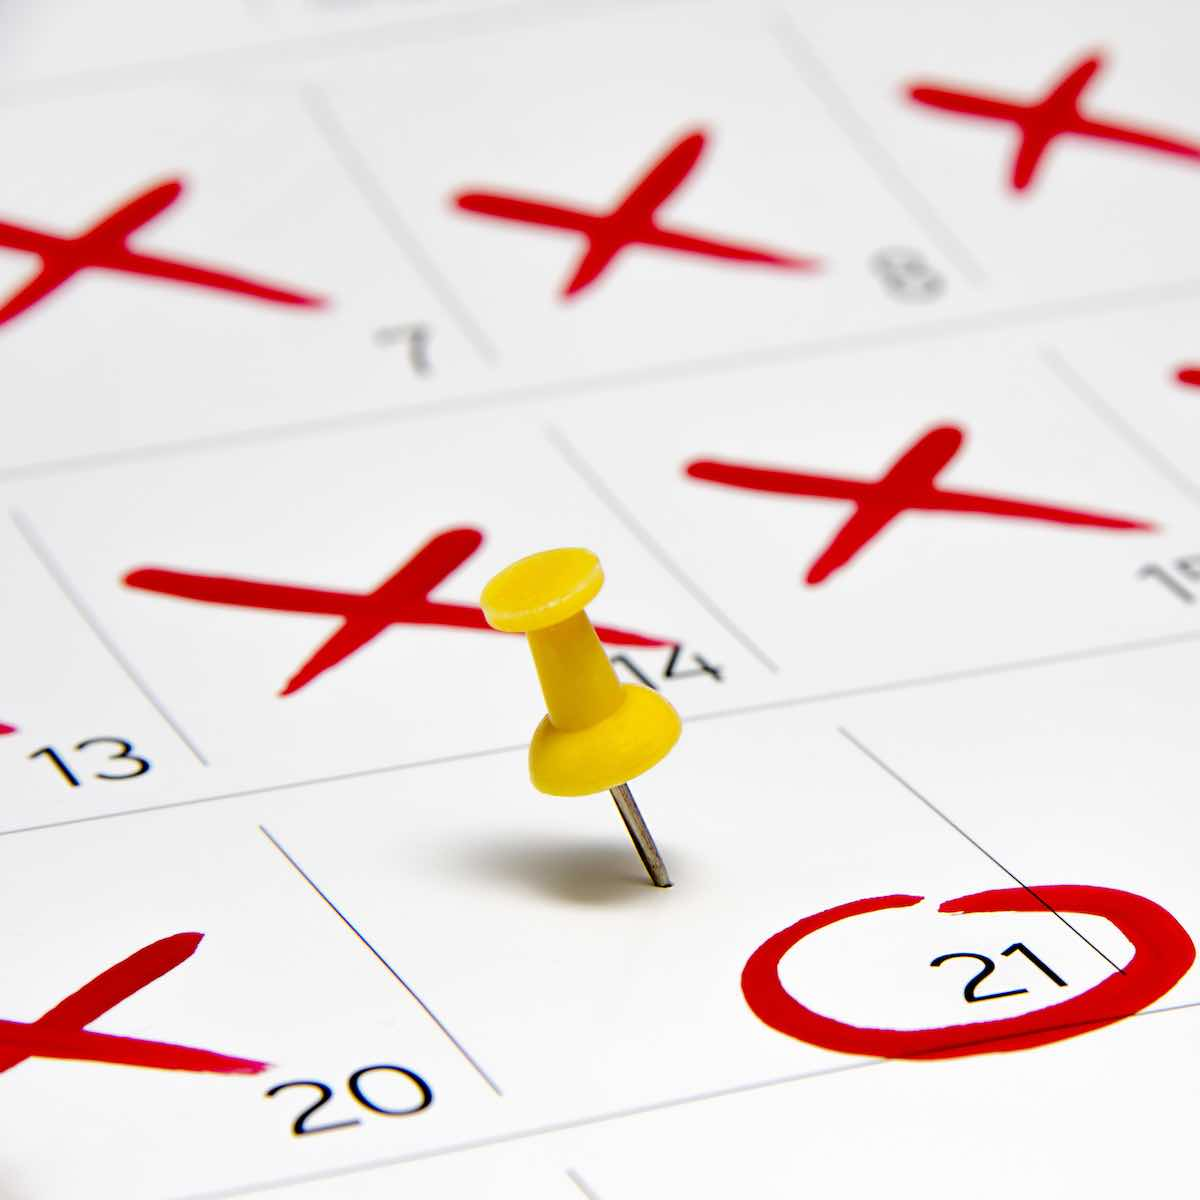 Schedule one day for financial management